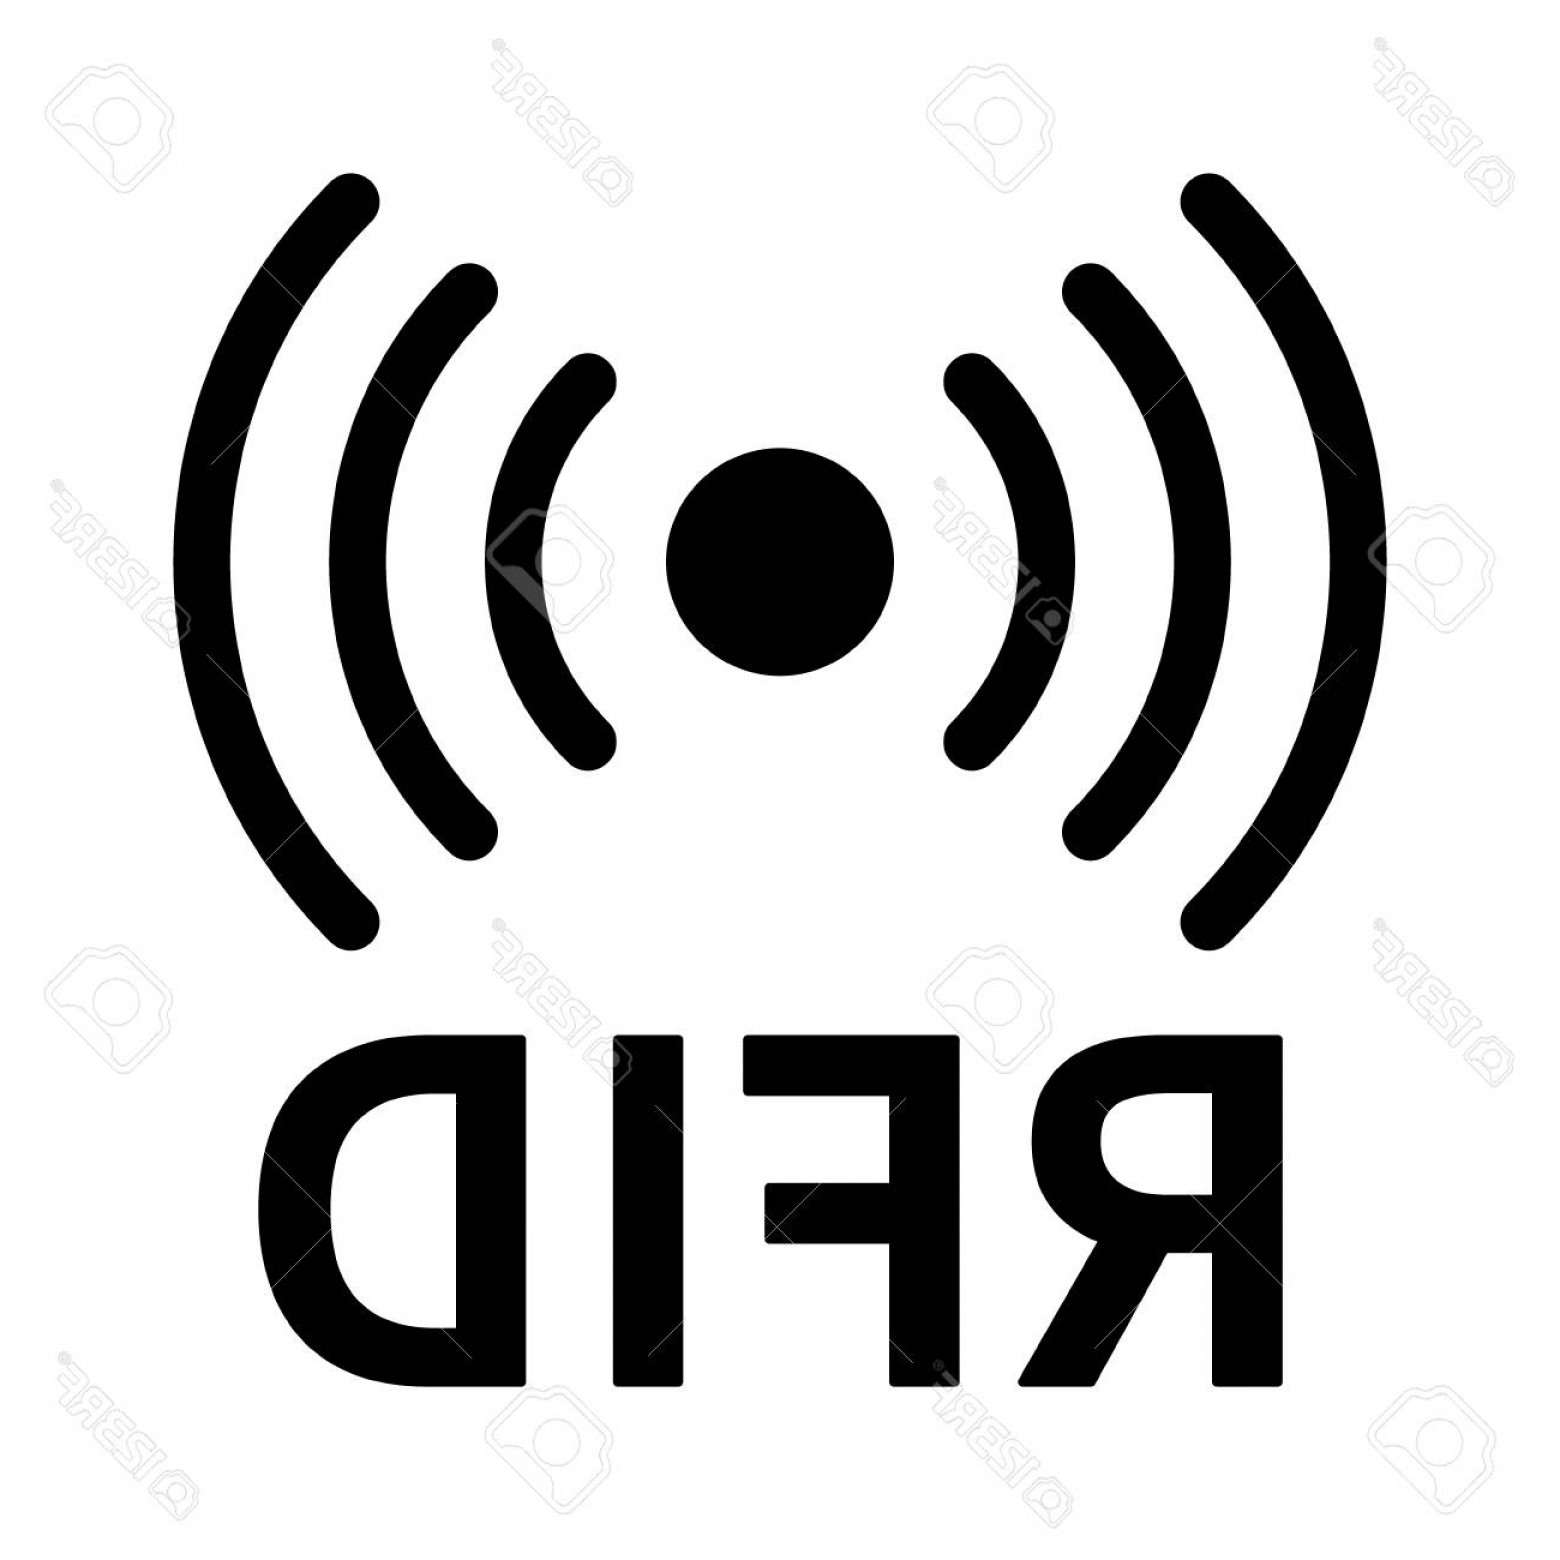 Radio Frequency Vector: Photostock Vector Rfid Or Radio Frequency Identification With Horizontal Radio Waves Line Art Vector Icon For Apps And